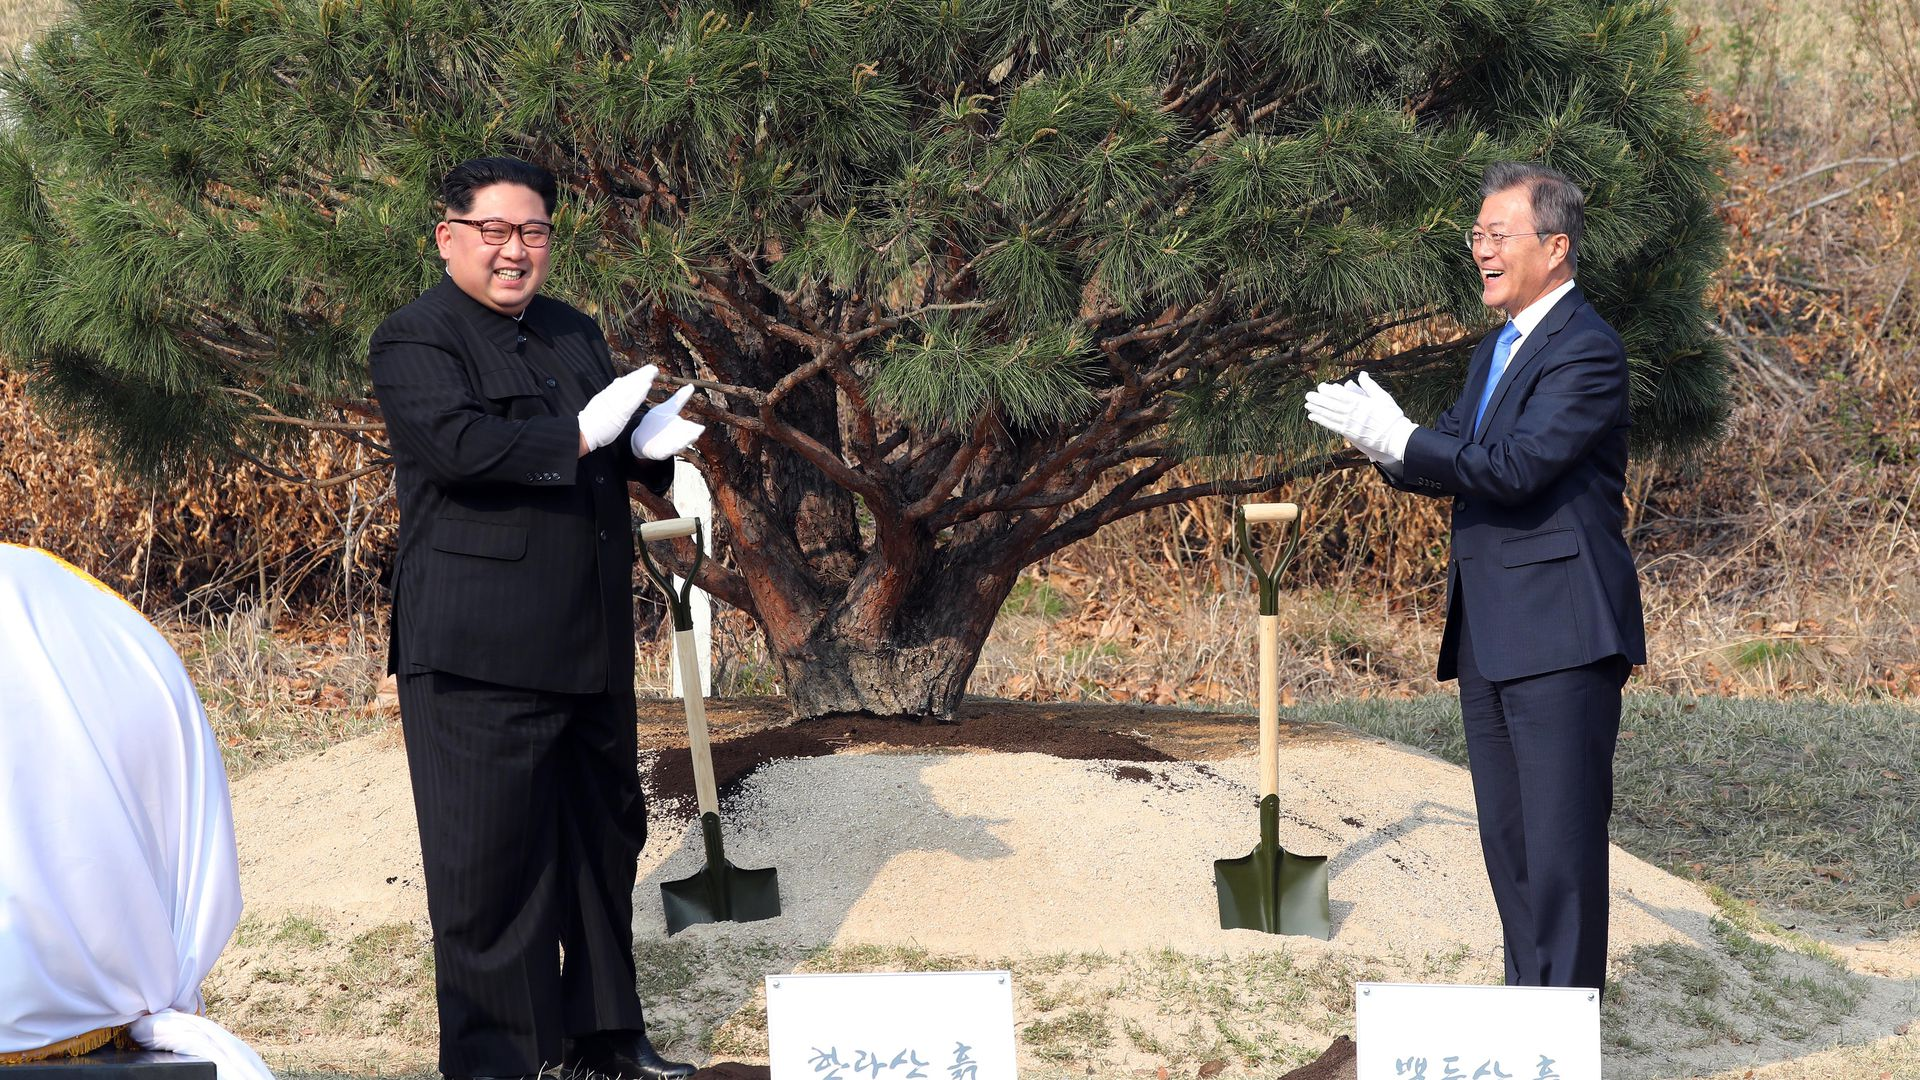 North Korean leader Kim Jong Un and South Korean President Moon Jae-in at a tree planting ceremony during the Inter-Korean Summit on April 27, 2018 in Panmunjom, South Korea.